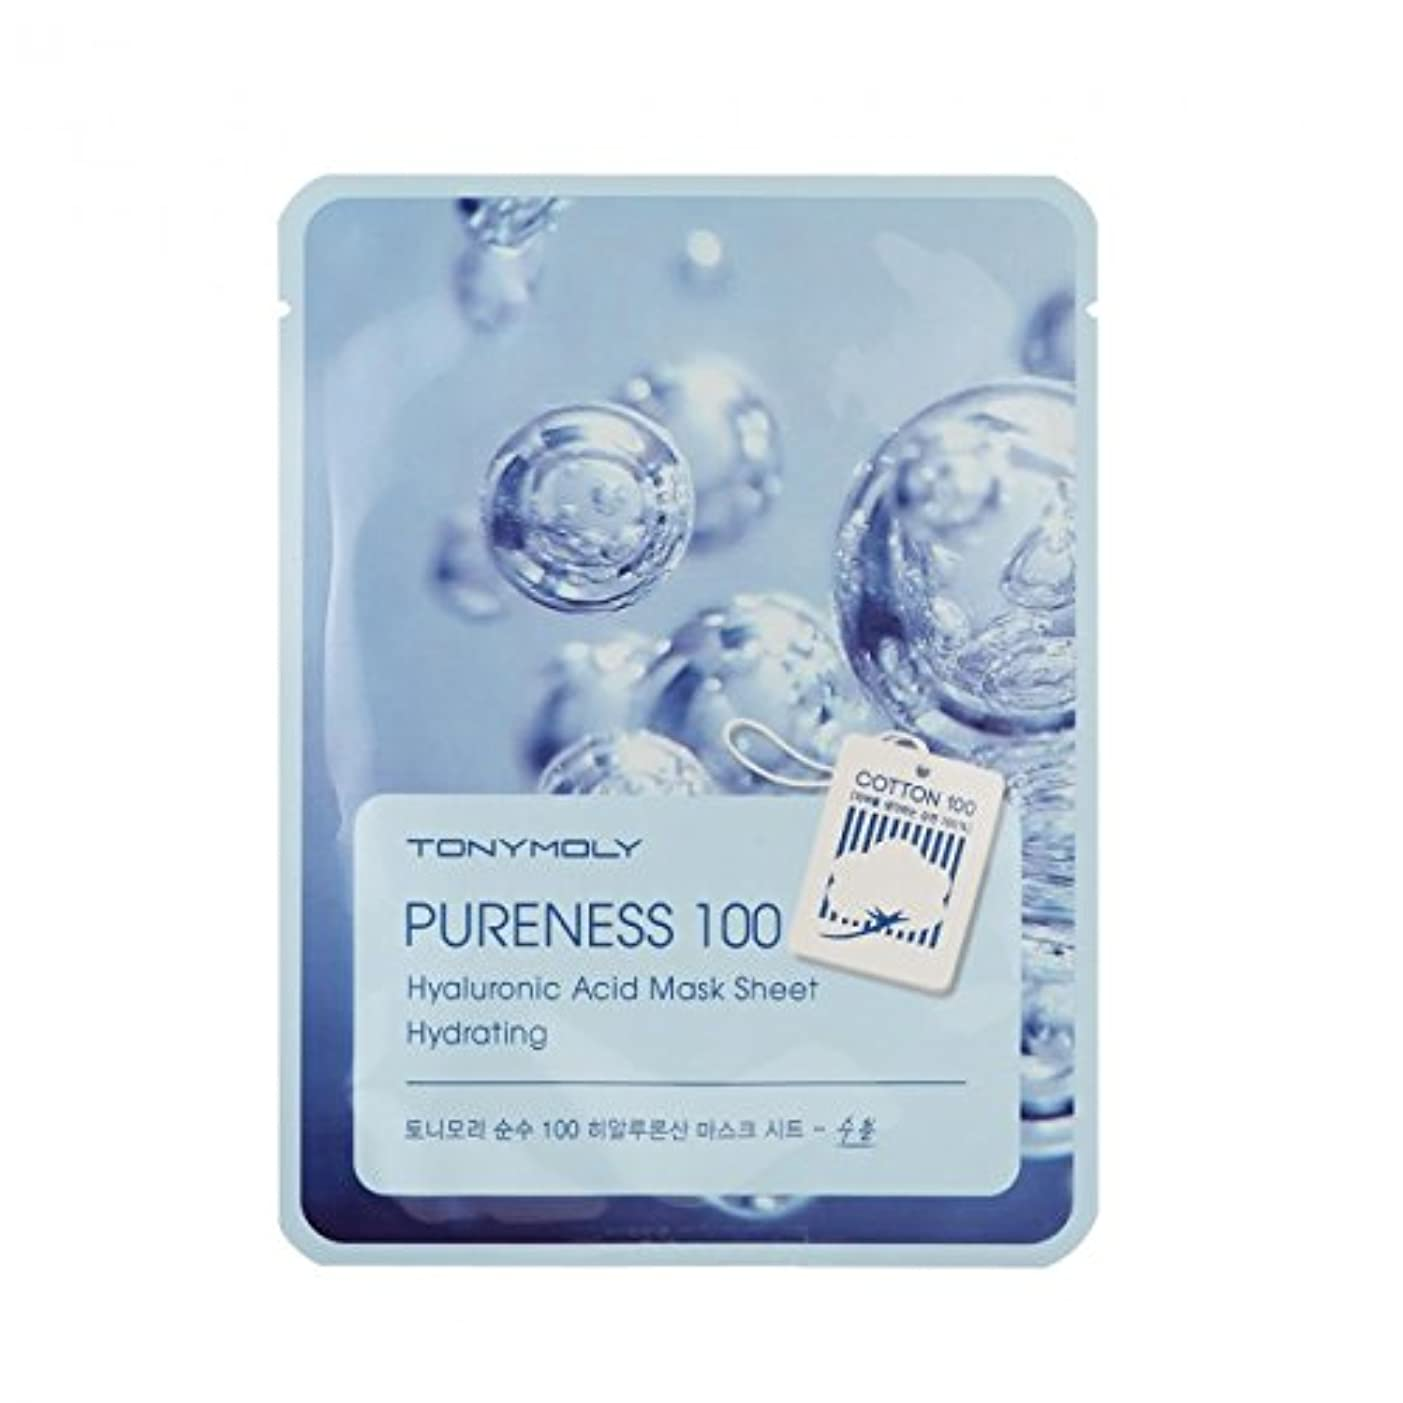 マイルド霧深い悪化させる(6 Pack) TONYMOLY Pureness 100 Hyaluronic Acid Mask Sheet Hydrating (並行輸入品)